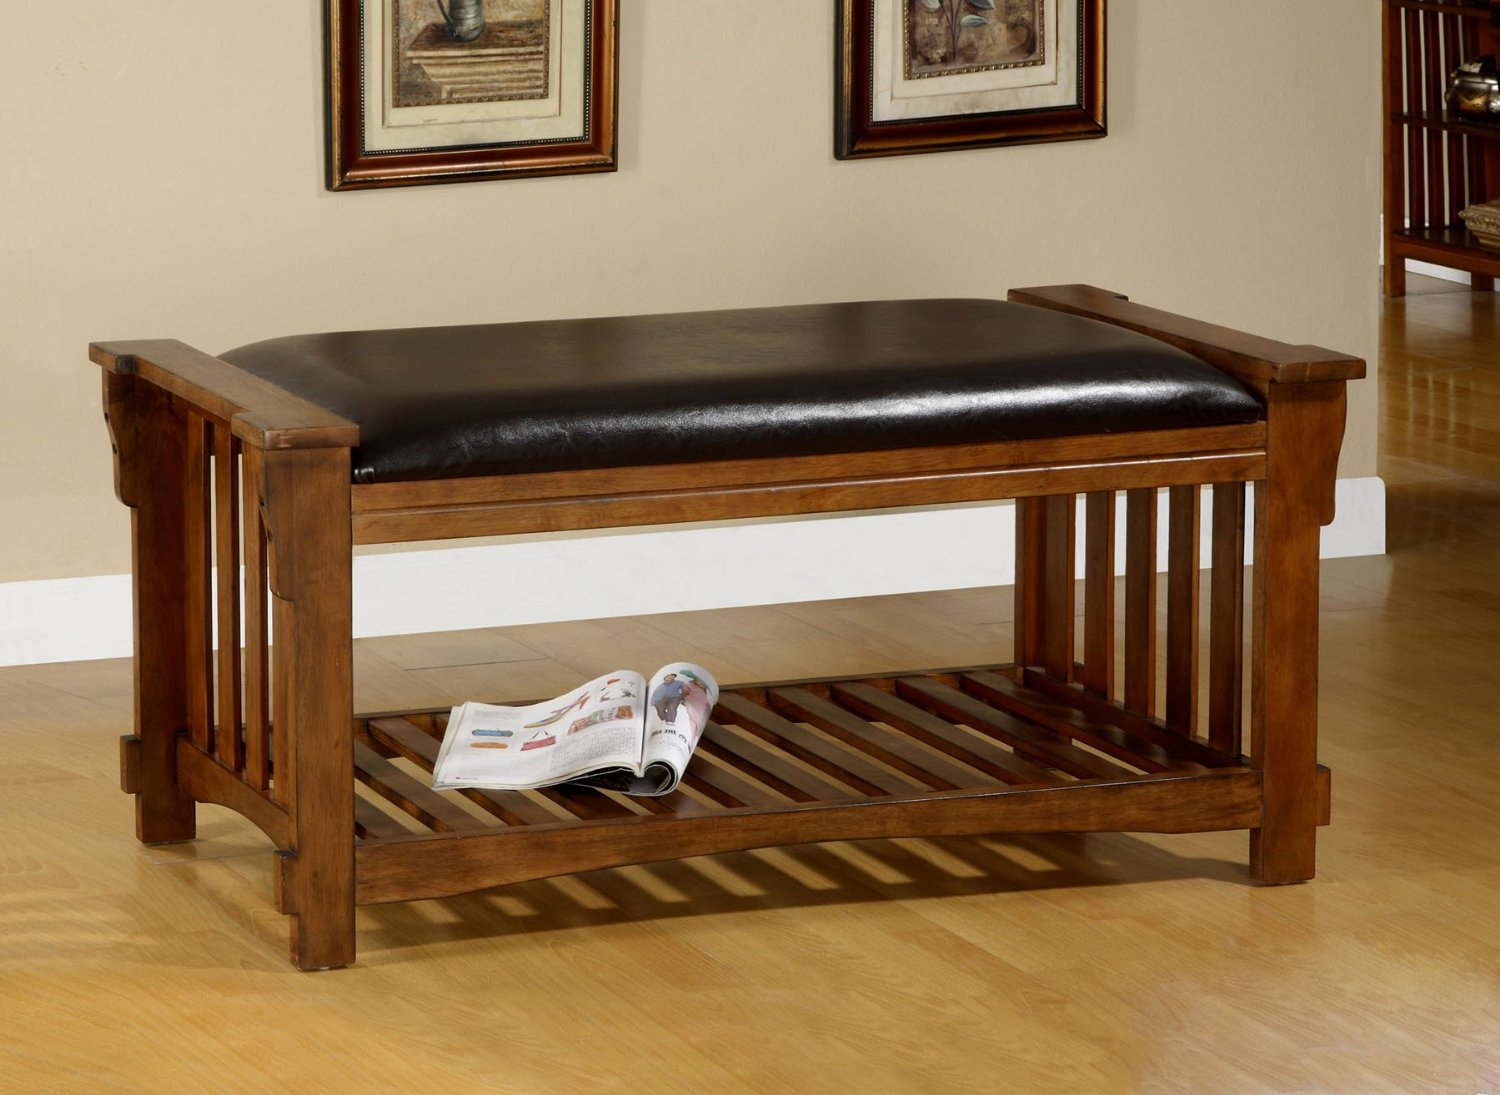 1PerfectChoice Salford Mission Style Bench Bottom Shelf Padded Seat Solid Wood Antique Oak